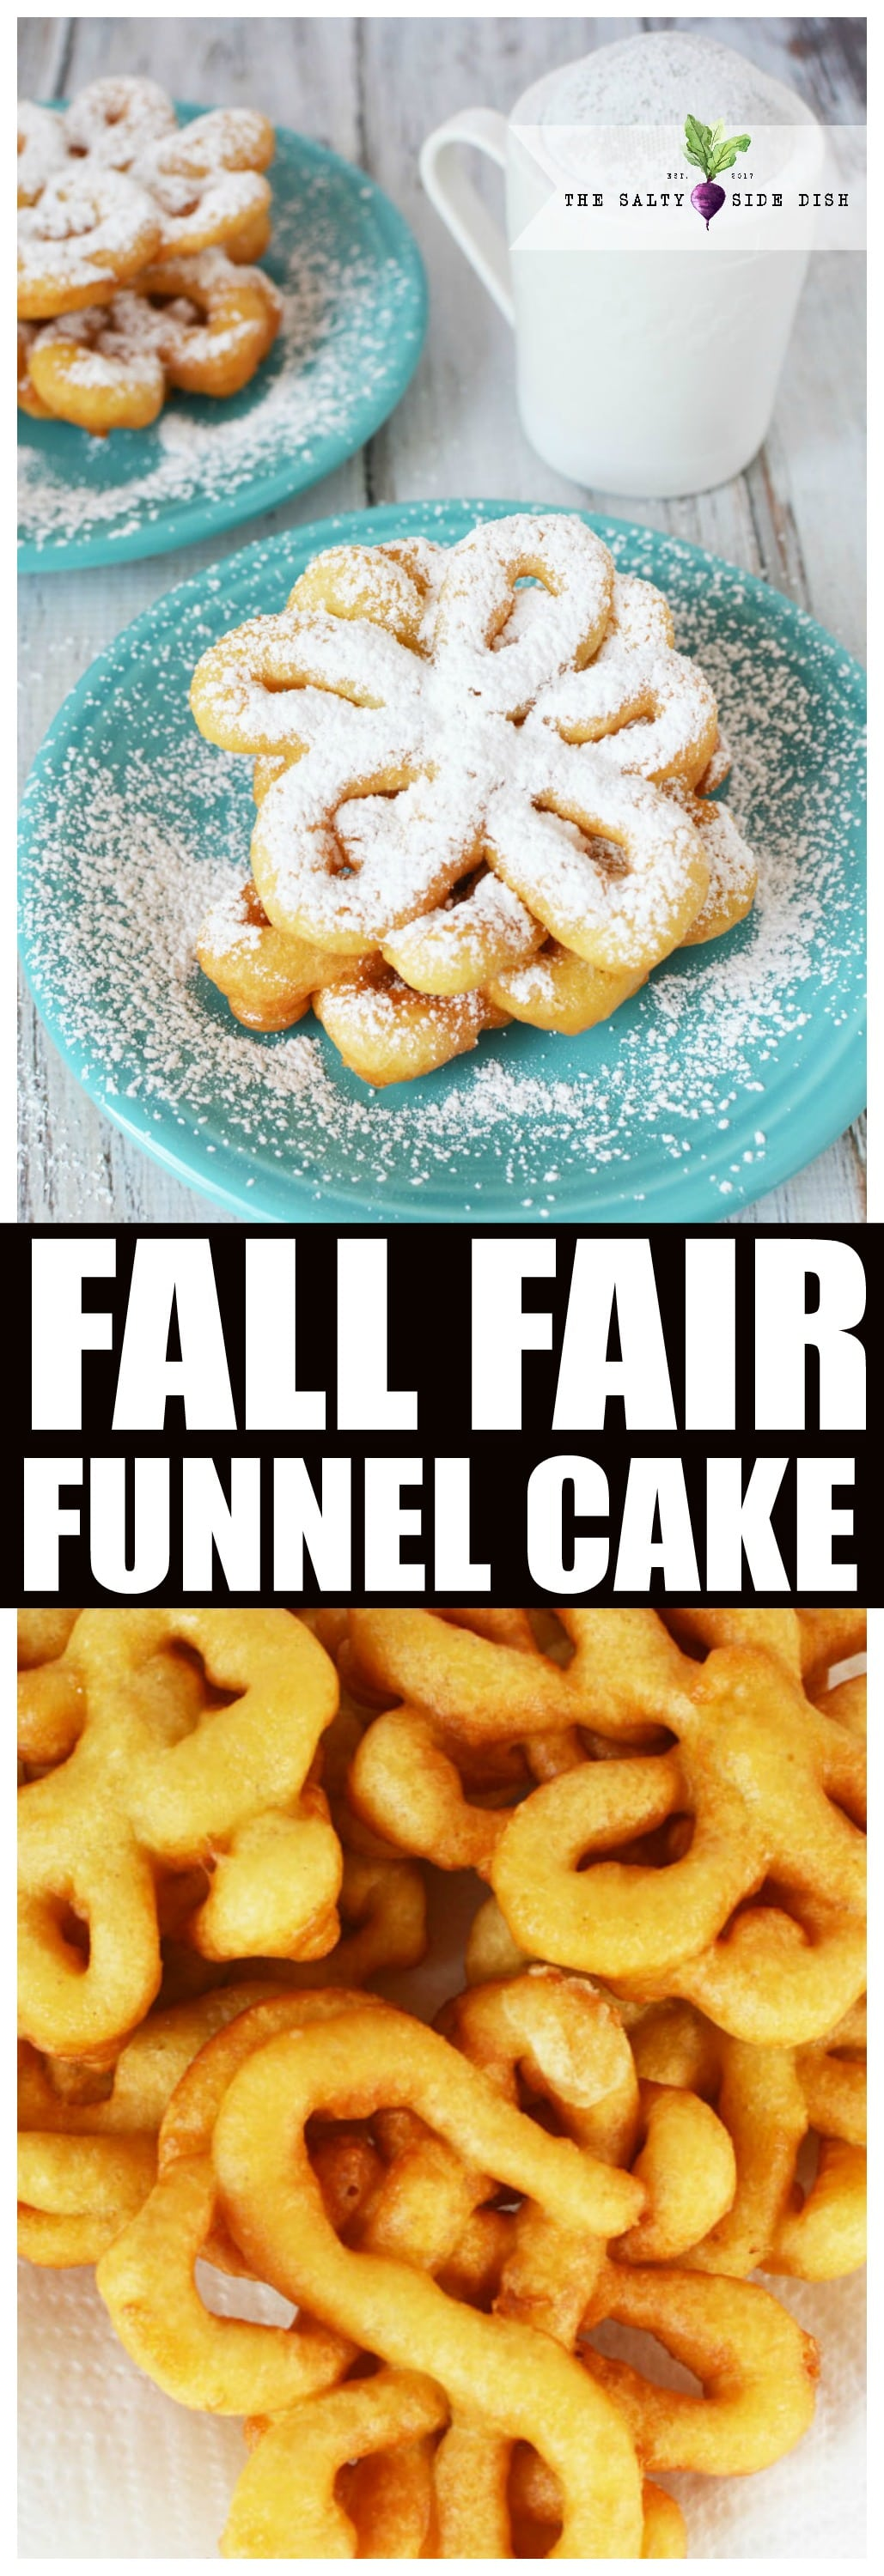 Funnel Cake Recipe Salty Side Dish